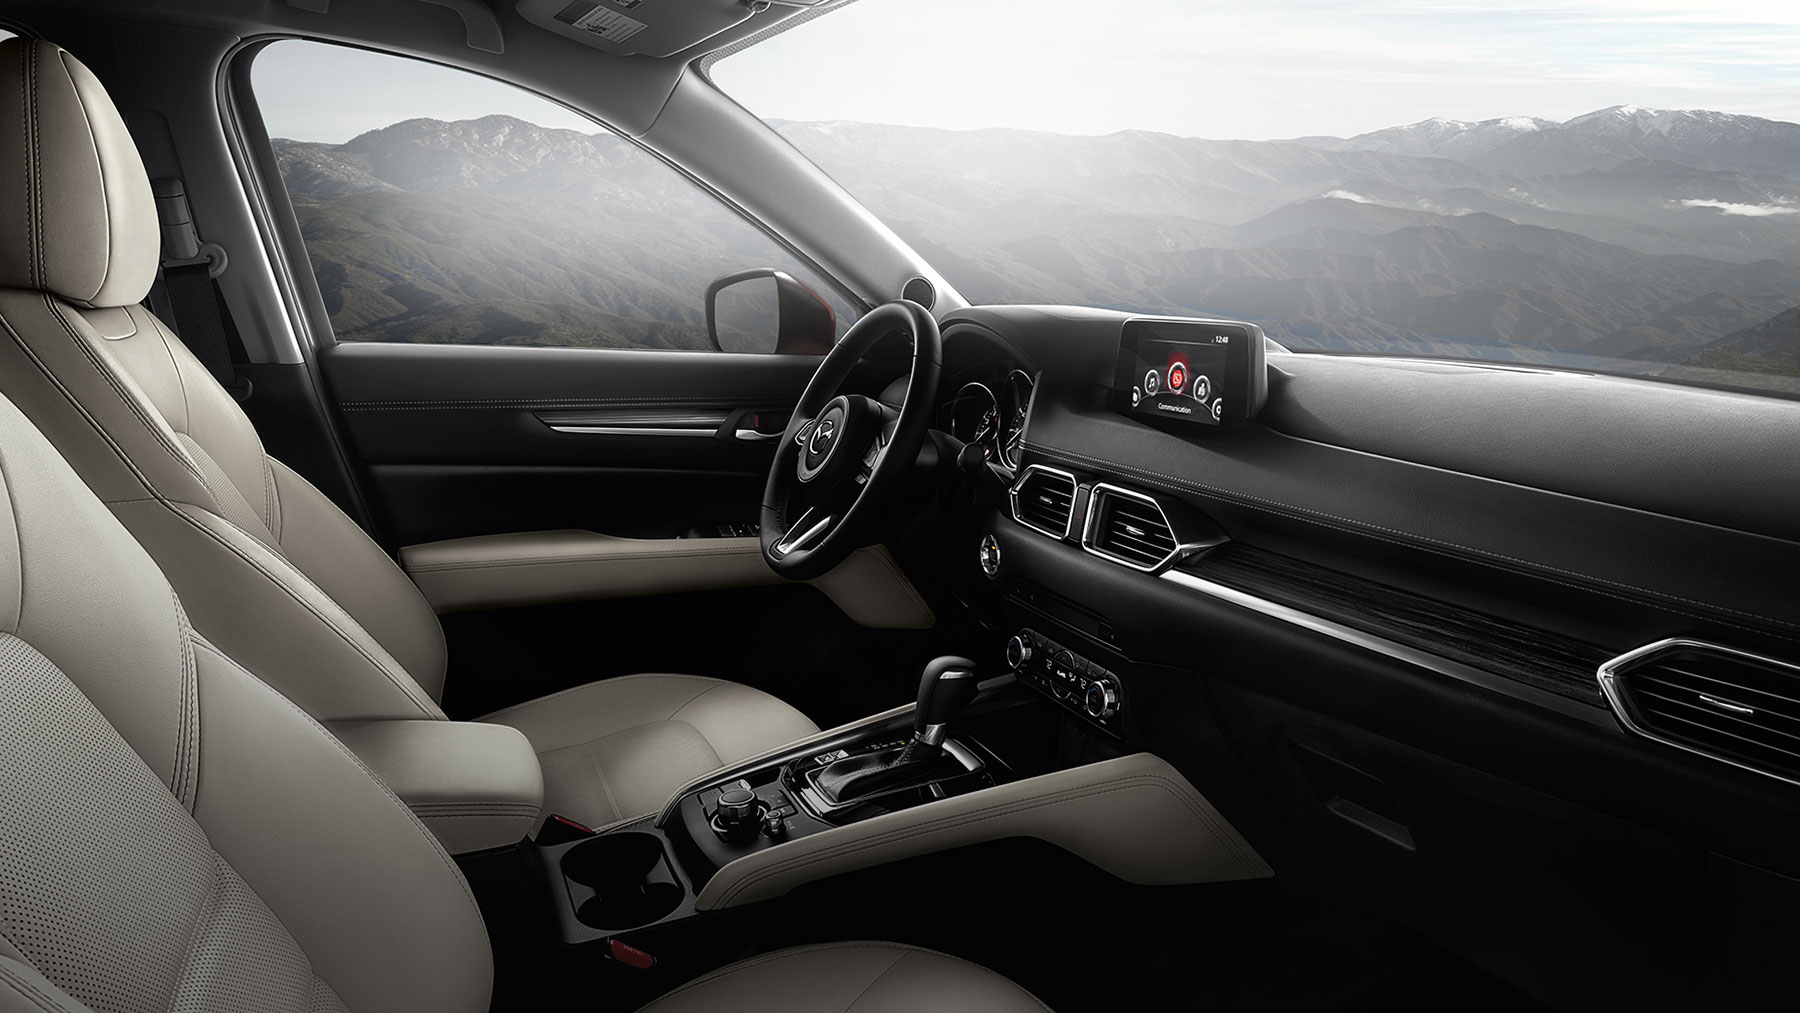 Relax in the Sumptuous Interior of the Mazda CX-5